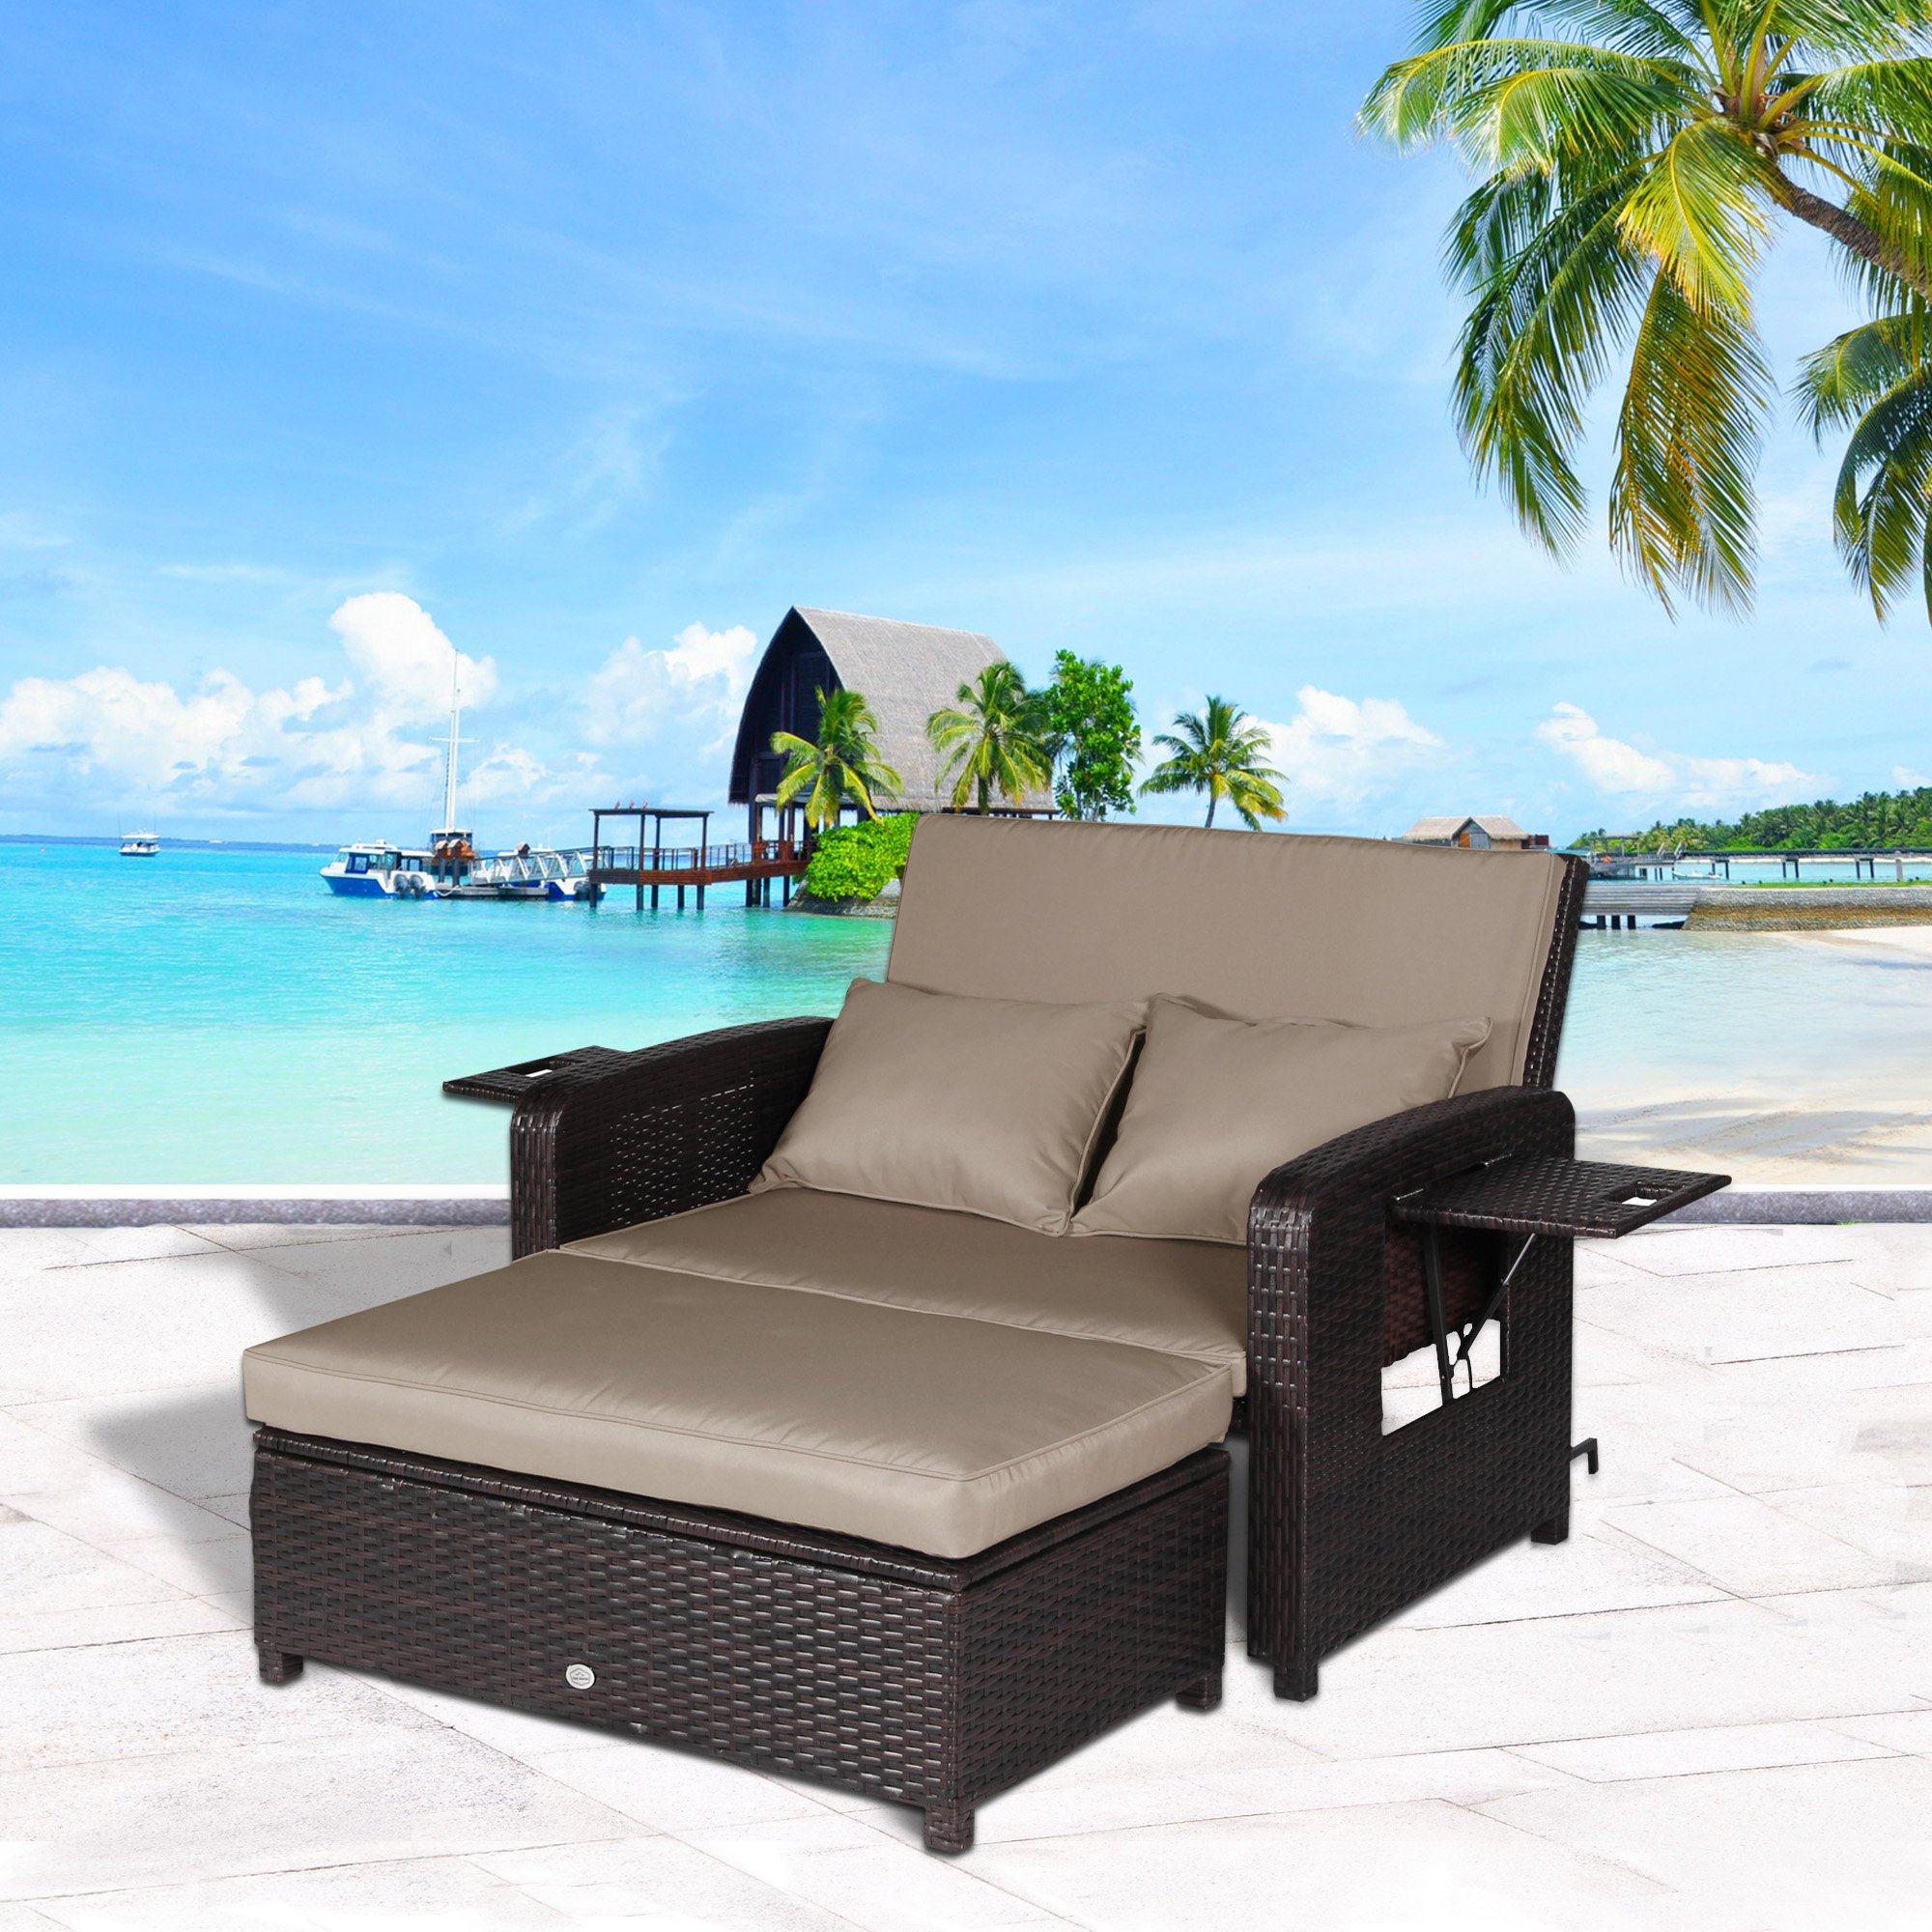 Cloud Mountain 2 PC Rattan Wicker Love Seat Sofa Daybed Set Outdoor Patio Love Seat with Ottoman Furniture Set Lounge Chair, Mix Brown Rattan with Khaki Cushions